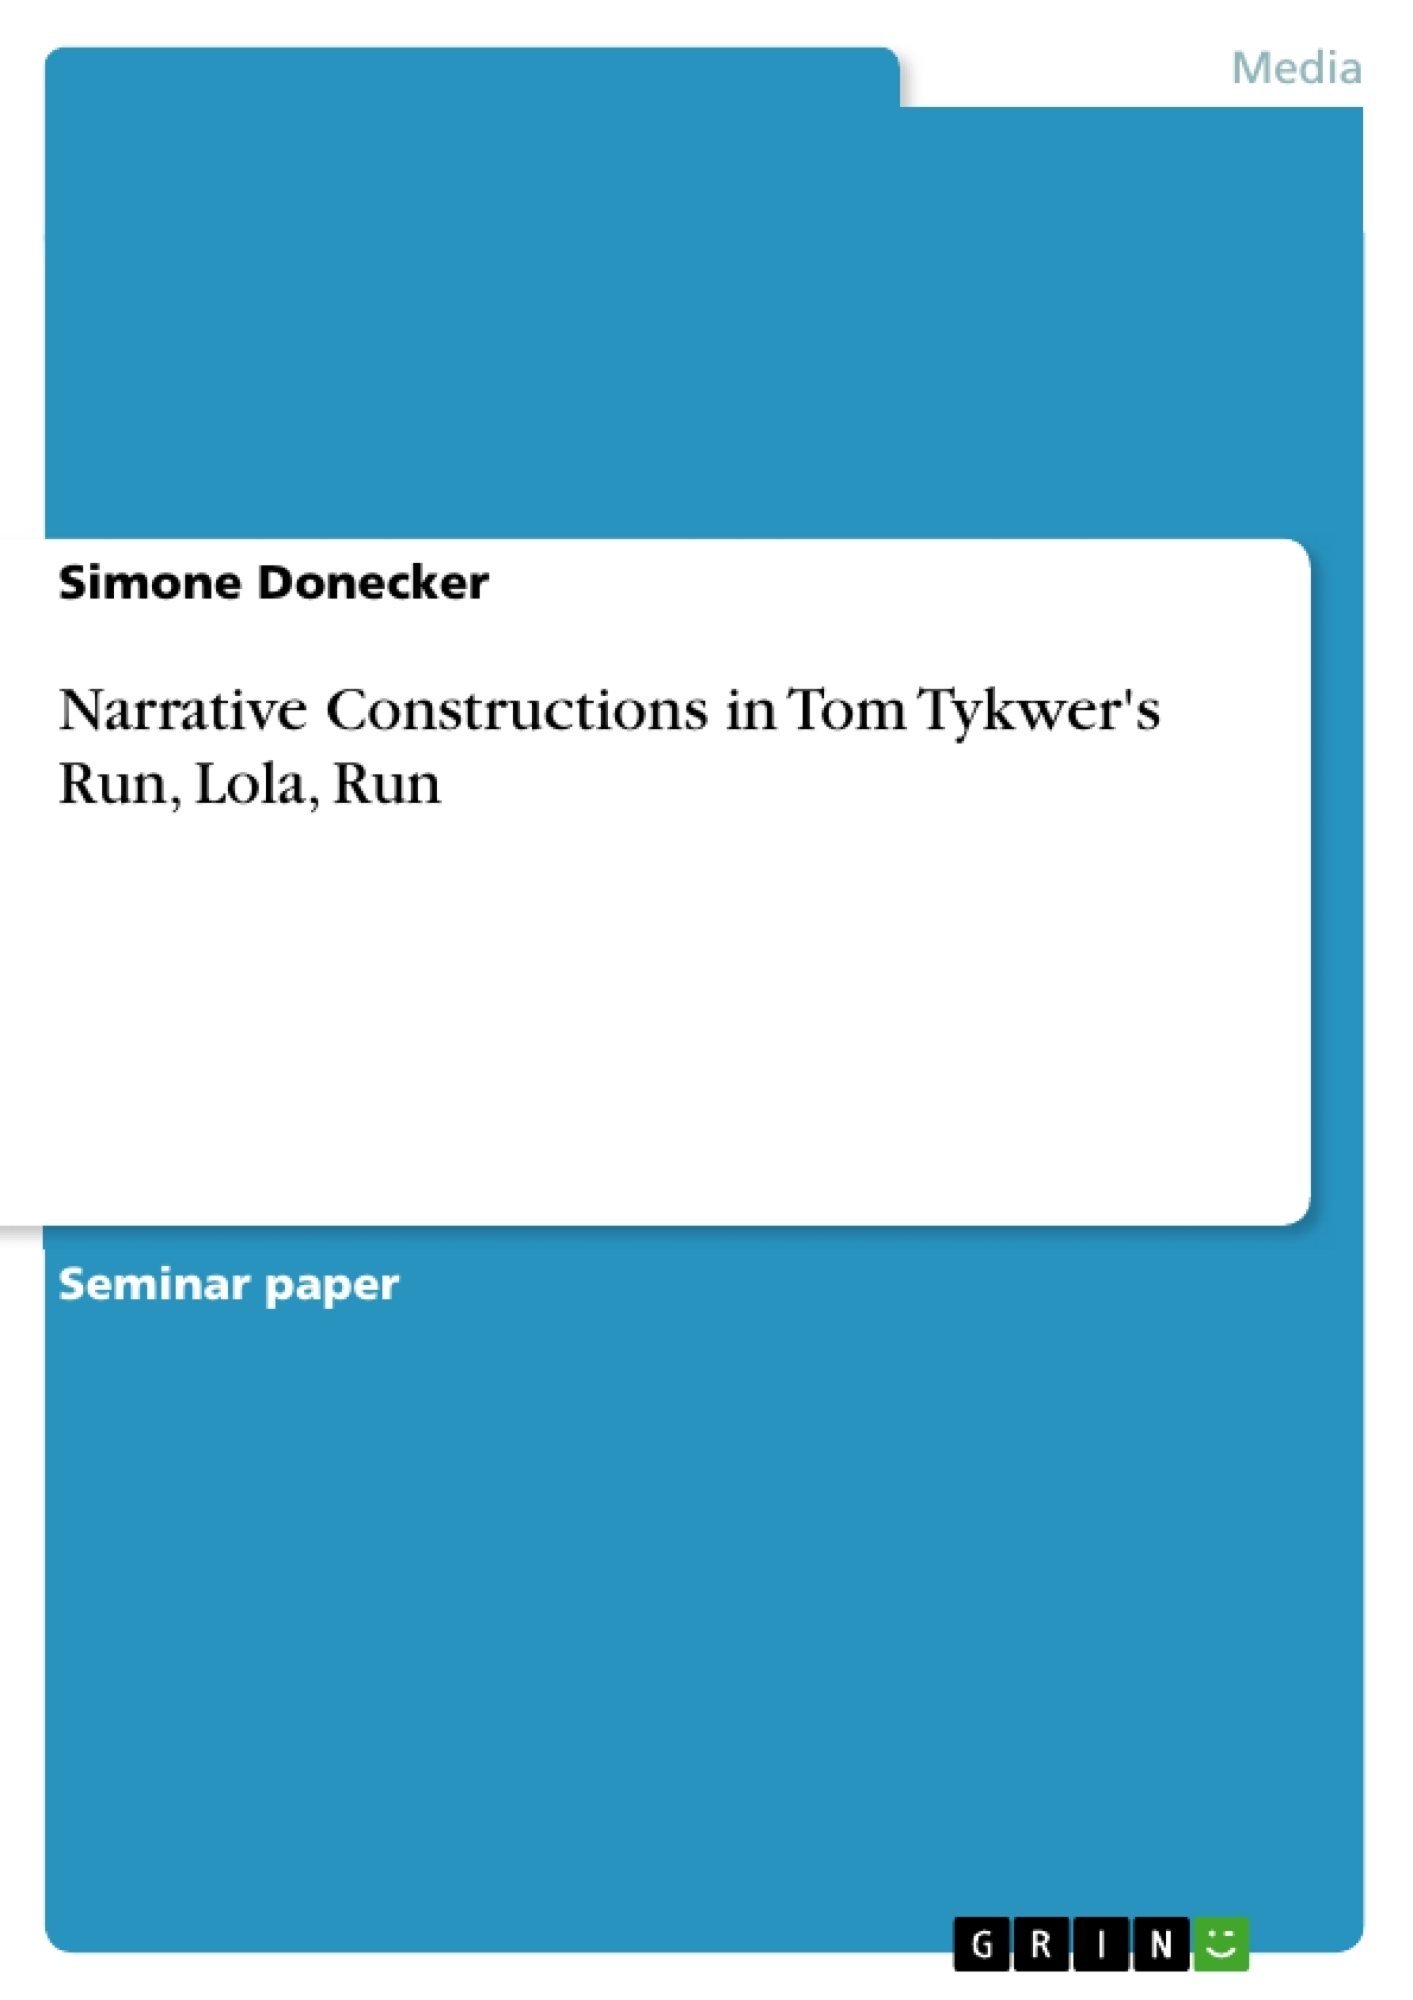 run lola run essays Read this essay on run lola run come browse our large digital warehouse of free sample essays get the knowledge you need in order to pass your classes and more only at termpaperwarehousecom.